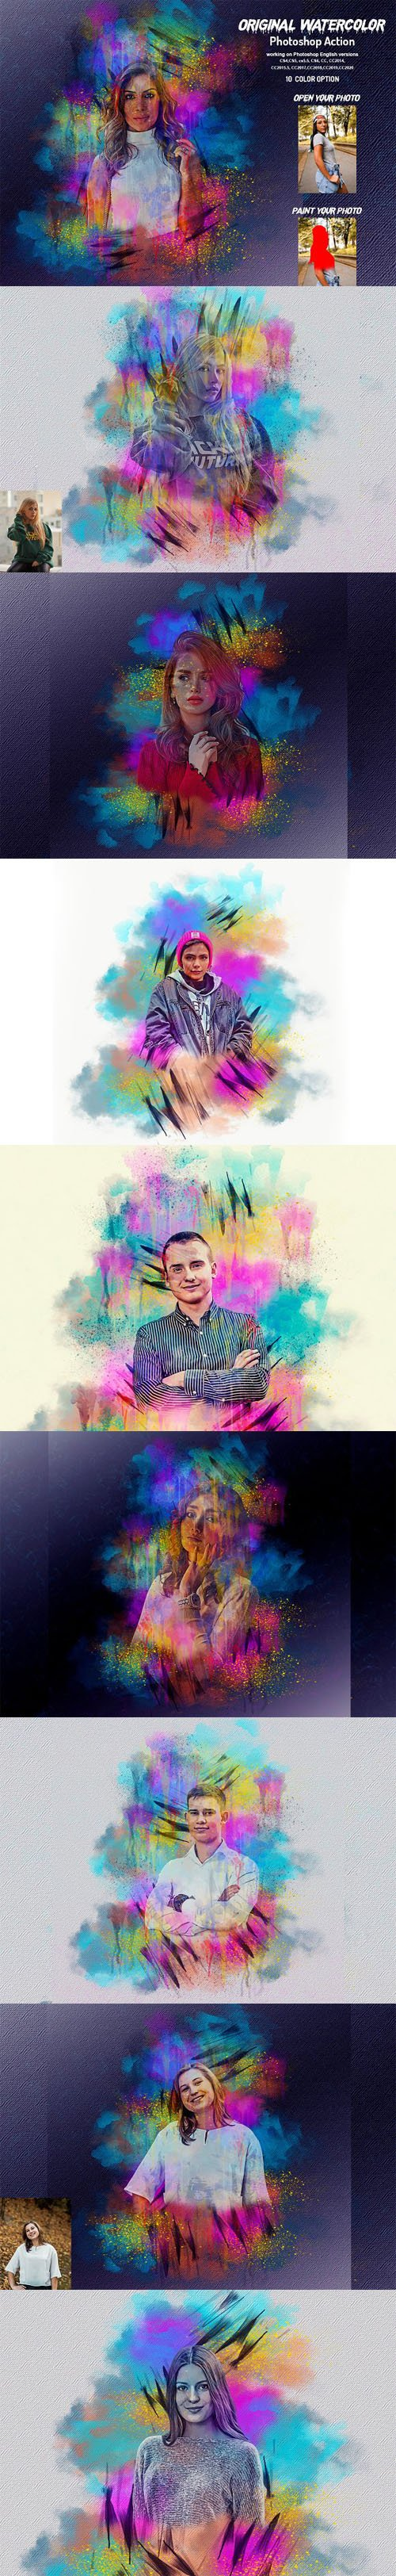 Original Watercolor Action for Photoshop + Brushes